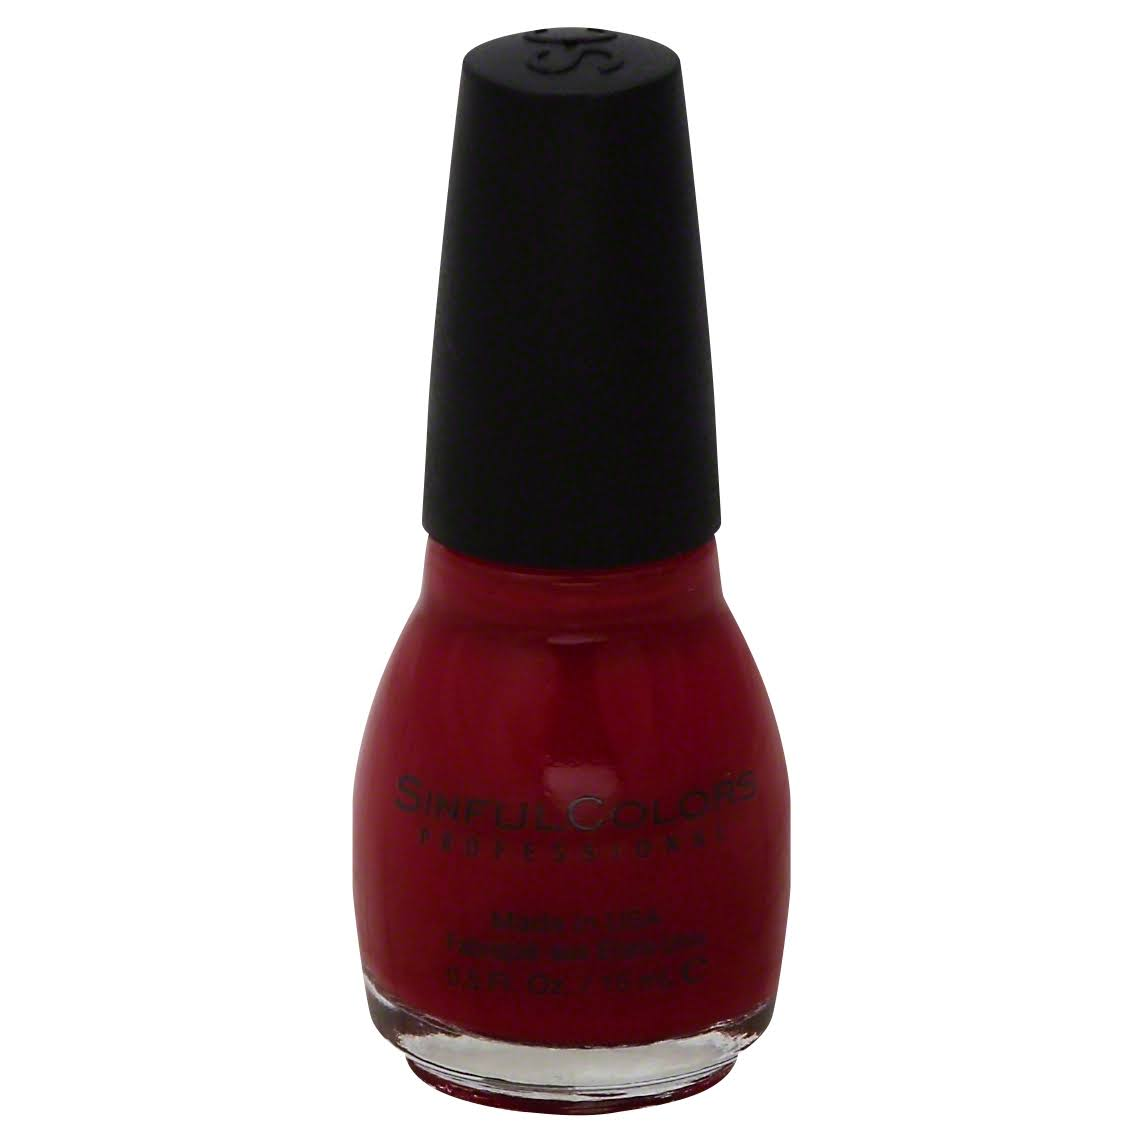 Sinful Colors Professionals Nail Colour - 1208 Berry Charm, 15ml